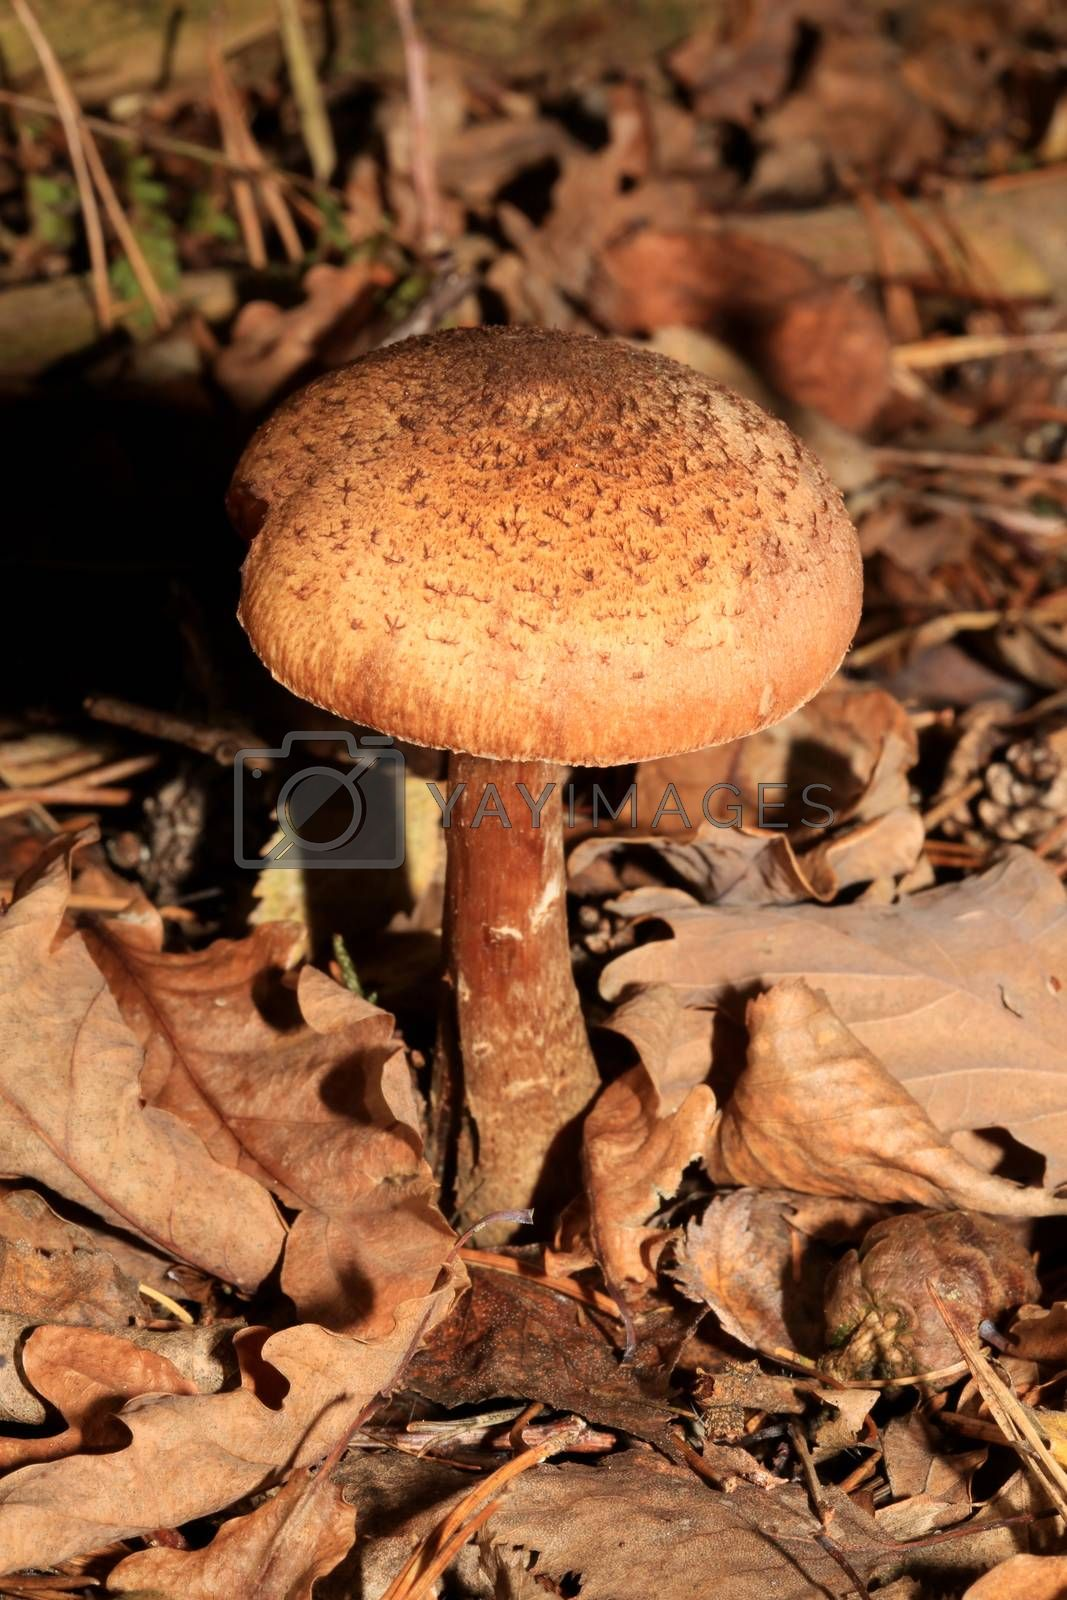 Wild winter mushrooms on forest macro background north germany high quality print